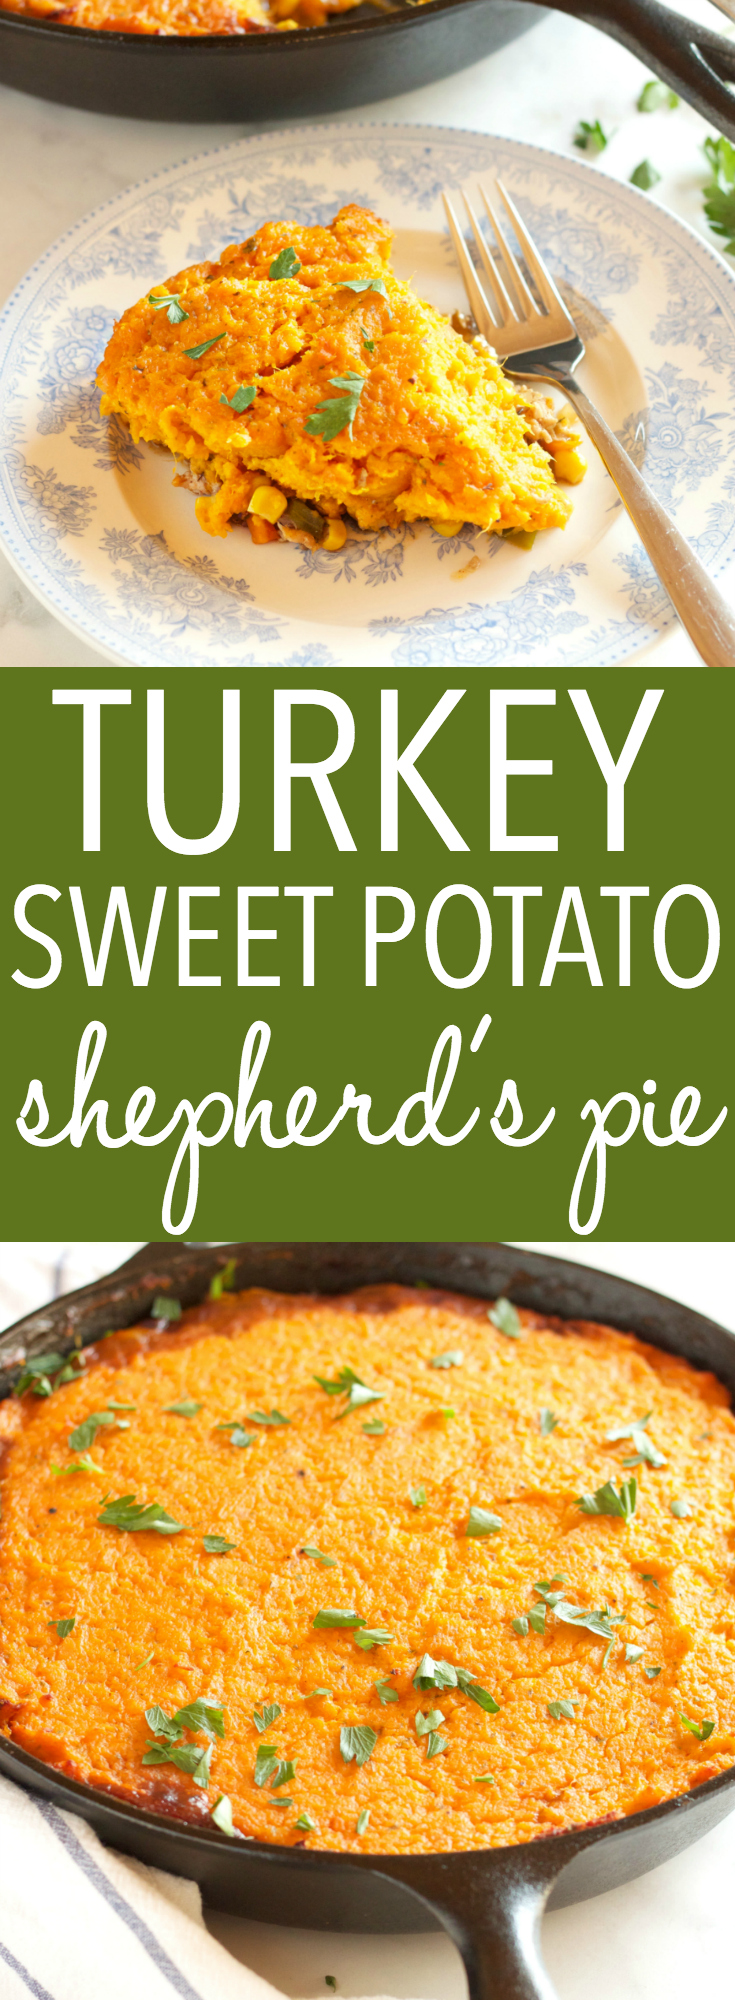 This Turkey Sweet Potato Shepherd's Pie is a delicious and healthy spin on the traditional British Shepherd's Pie made with lean turkey meat and sweet potatoes! It's the perfect family meal made in only one skillet, in 40 minutes or less! Recipe from thebusybaker.ca! #easyshepherdspie #healthymeal #healthyshepherdspie via @busybakerblog